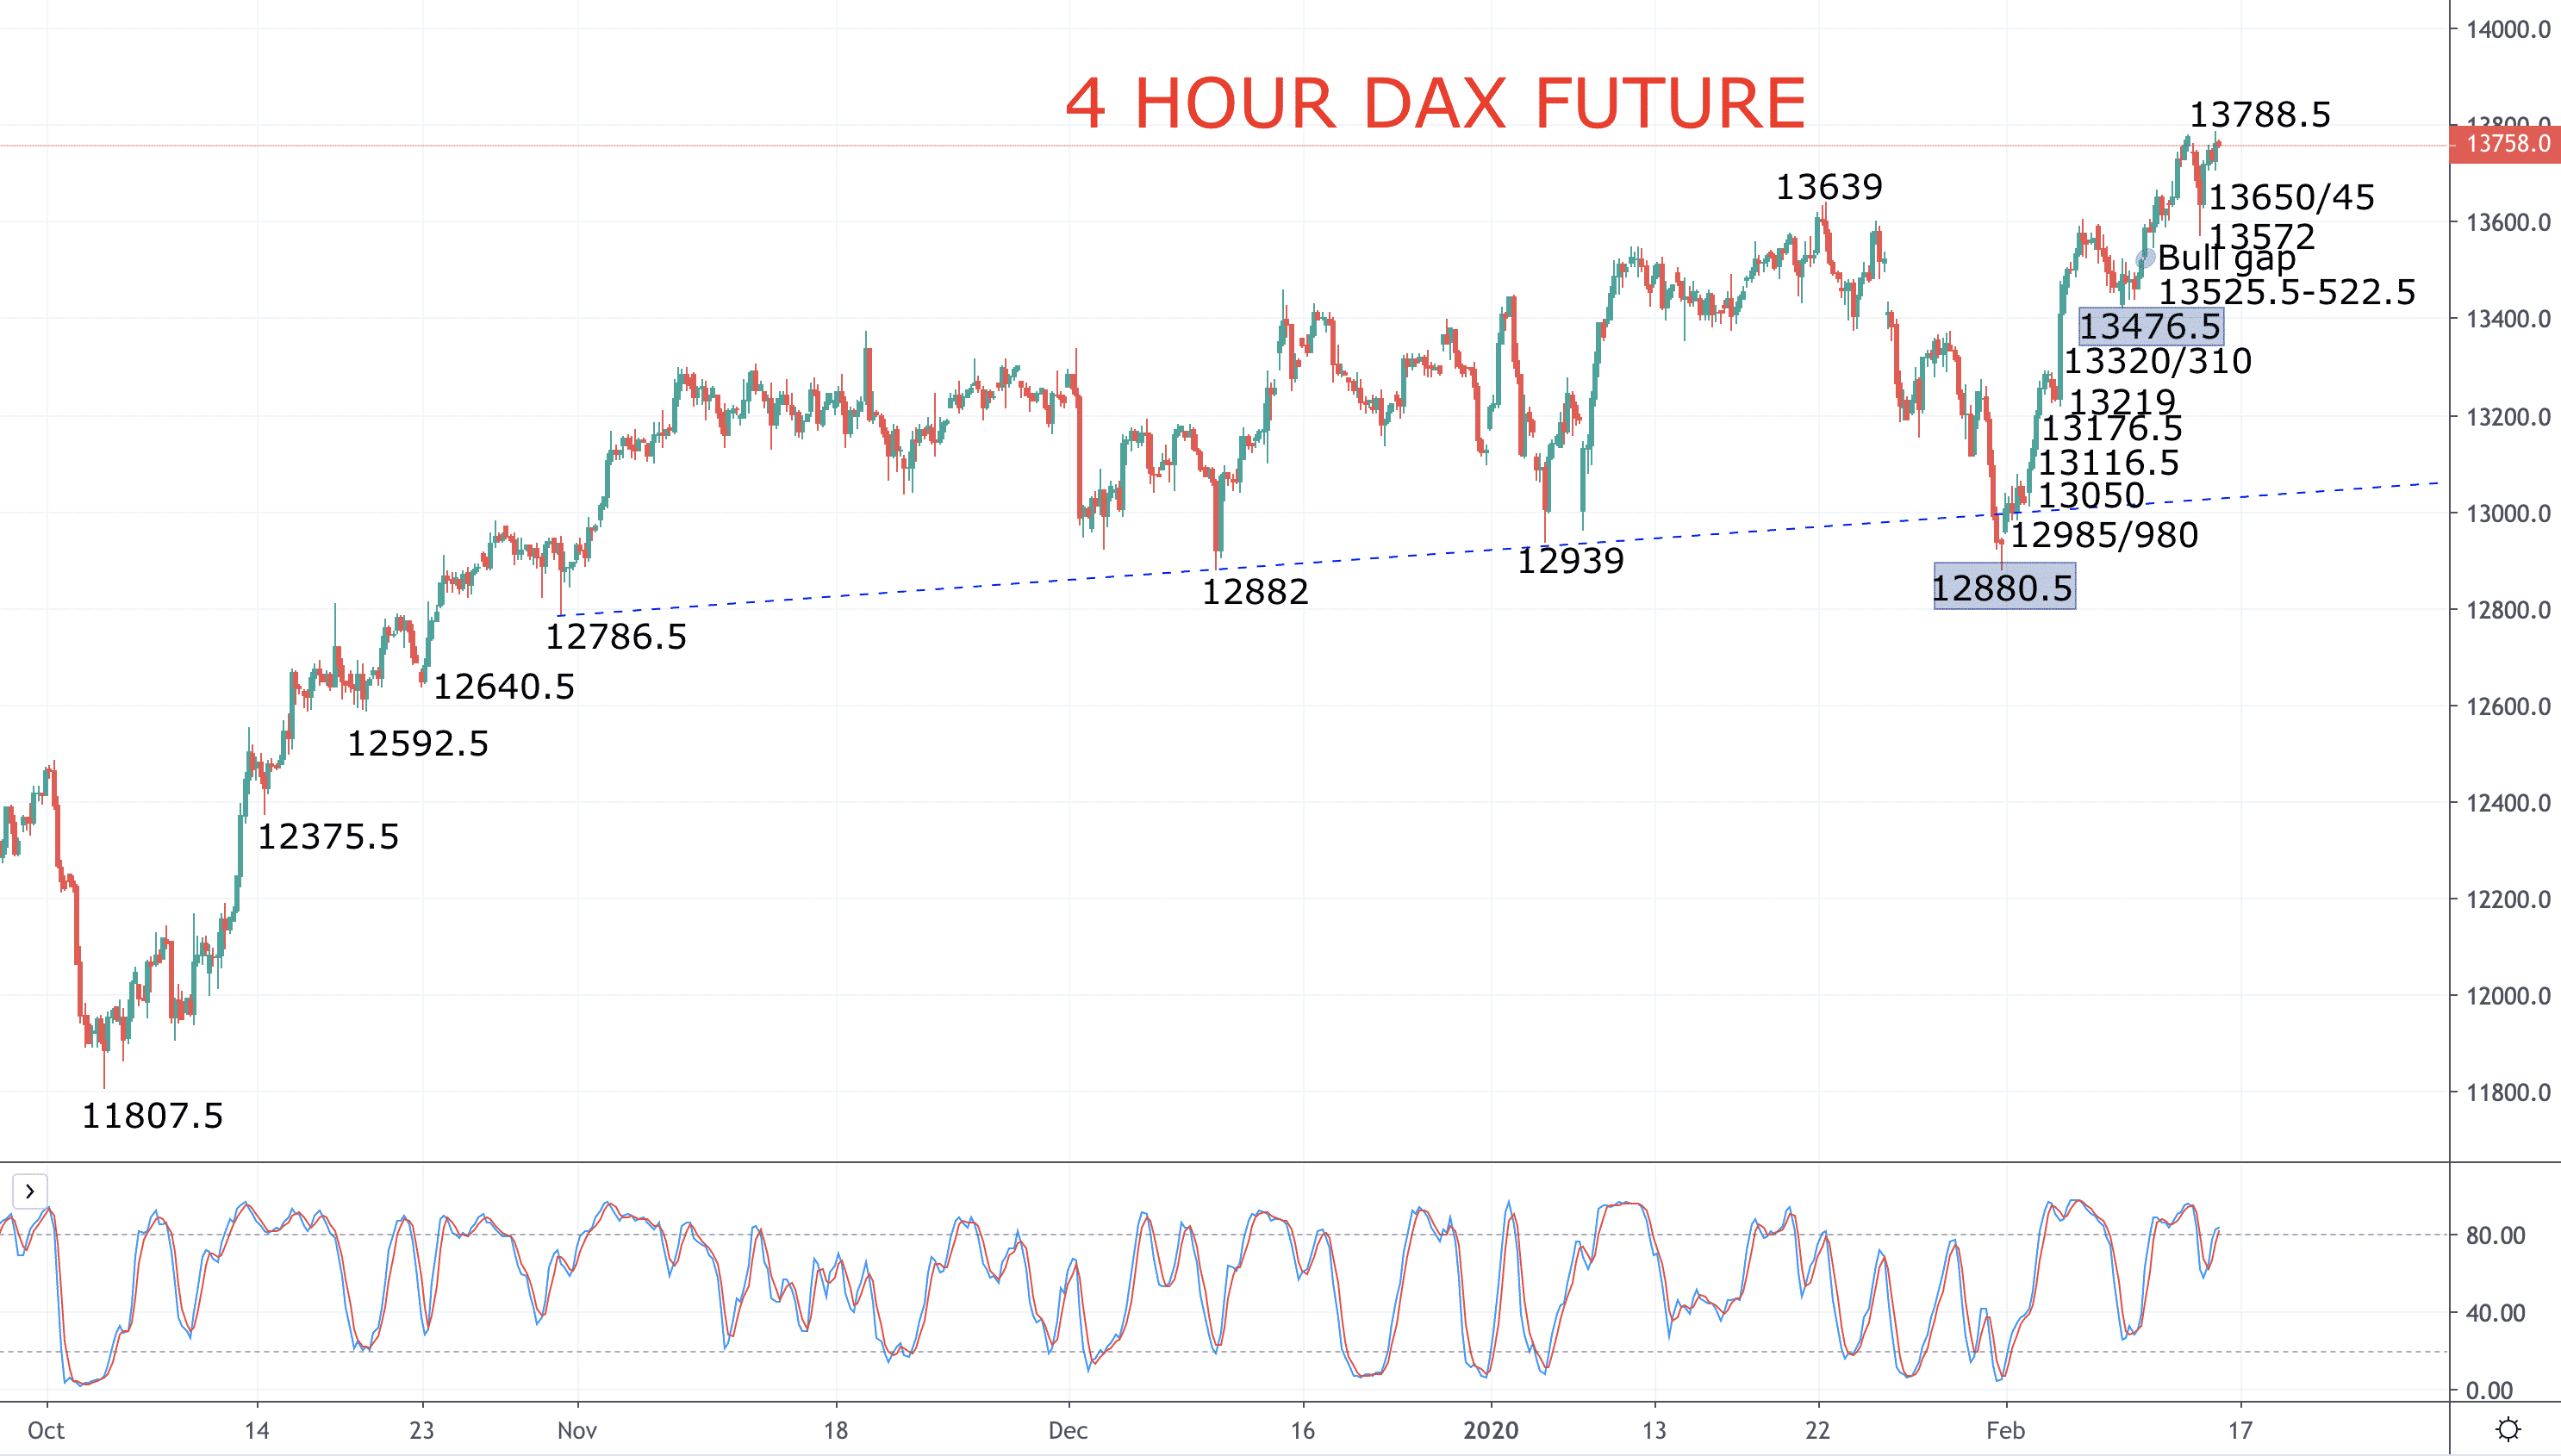 Stocks surge, DAX hits another new all-time high Image